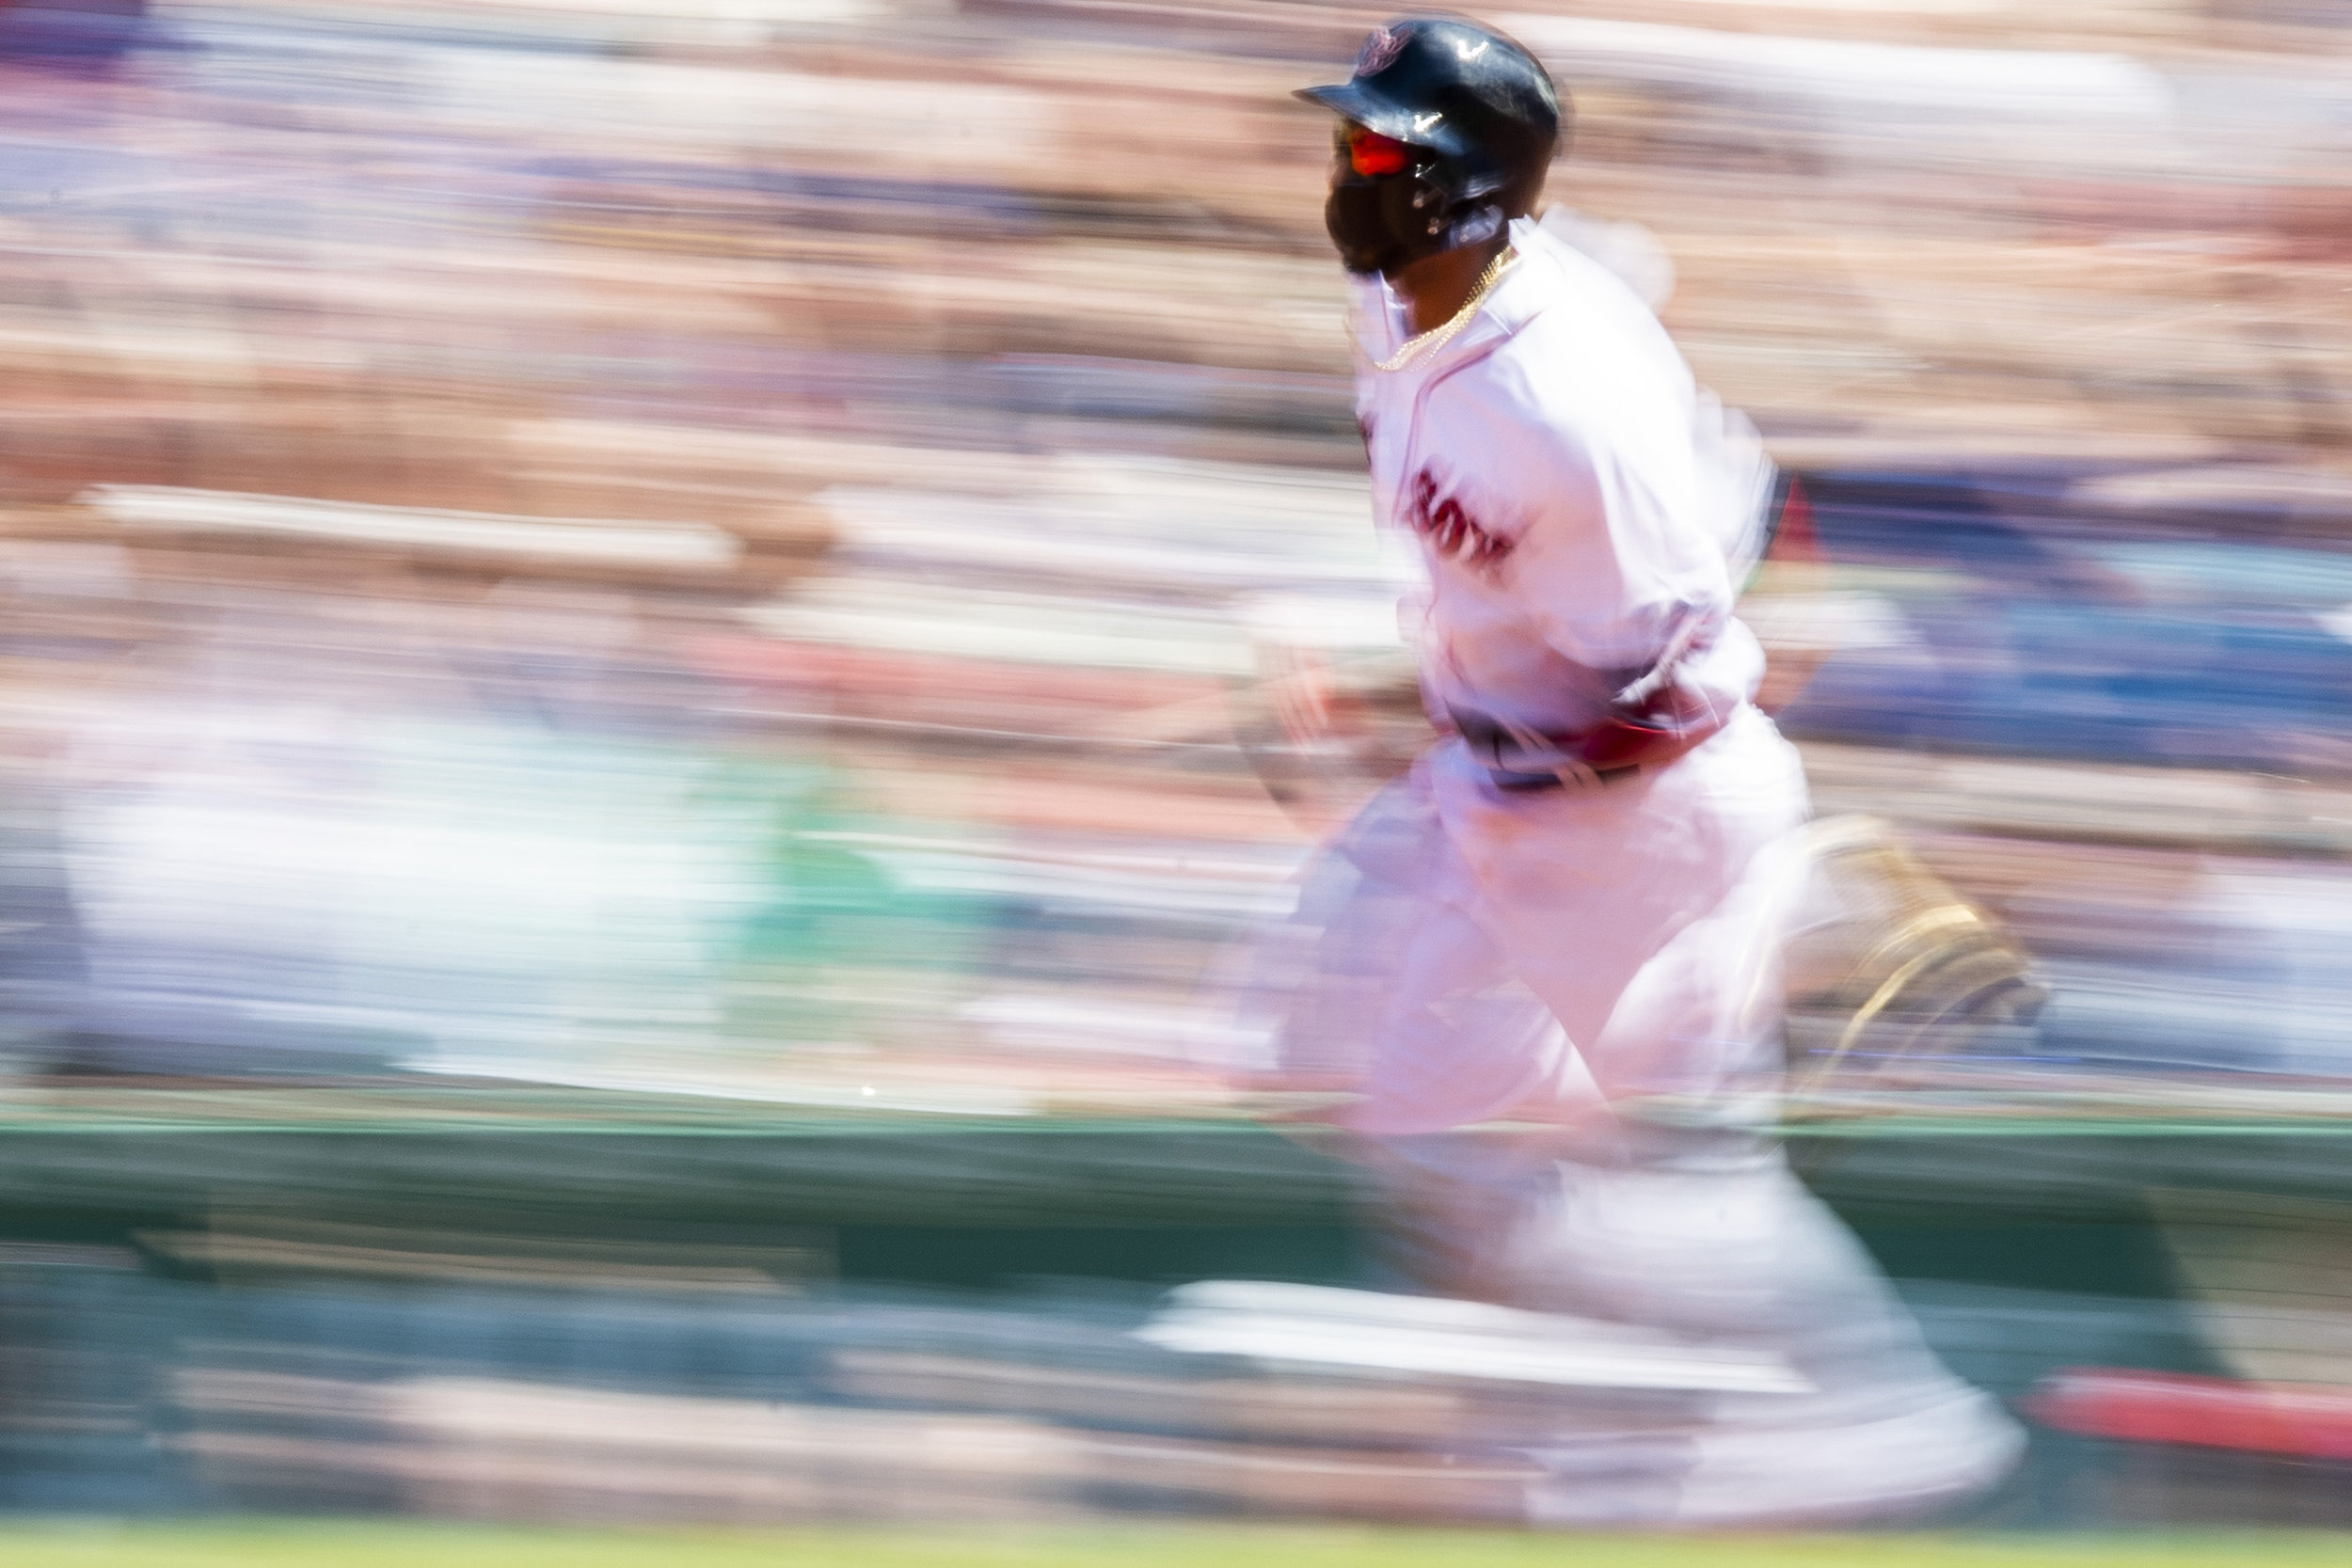 May 30, 2018, Boston, MA: Boston Red Sox second basemen Eduardo Nunez makes his way around the bases after hitting a home run as the Boston Red Sox face the Toronto Blue Jays at Fenway Park in Boston, Massachusetts on Wednesday, May 30, 2018. (Photo by Matthew Thomas/Boston Red Sox)